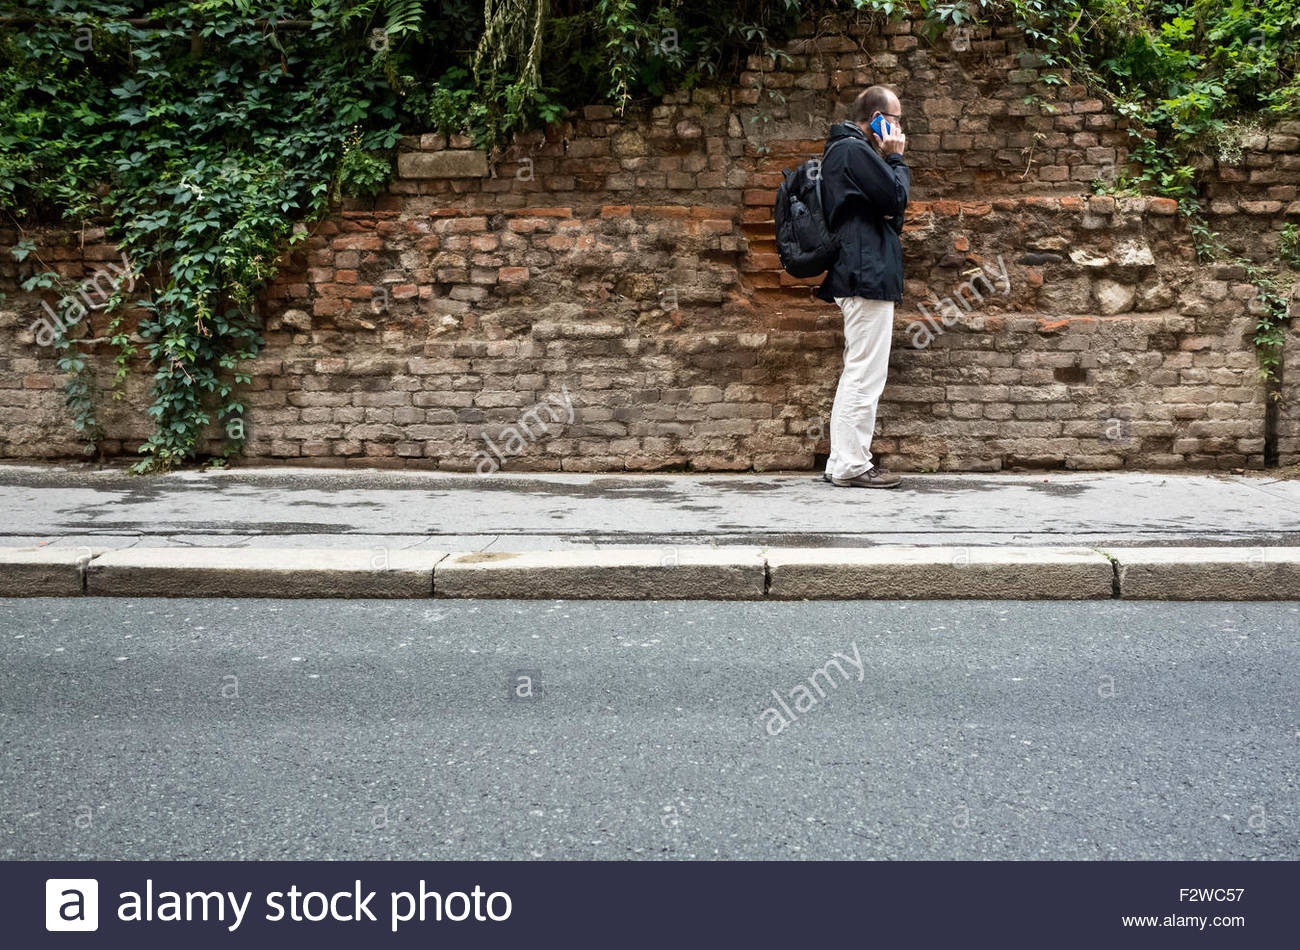 man standing on a sidewalk and calling with a cellphone - Stock Image